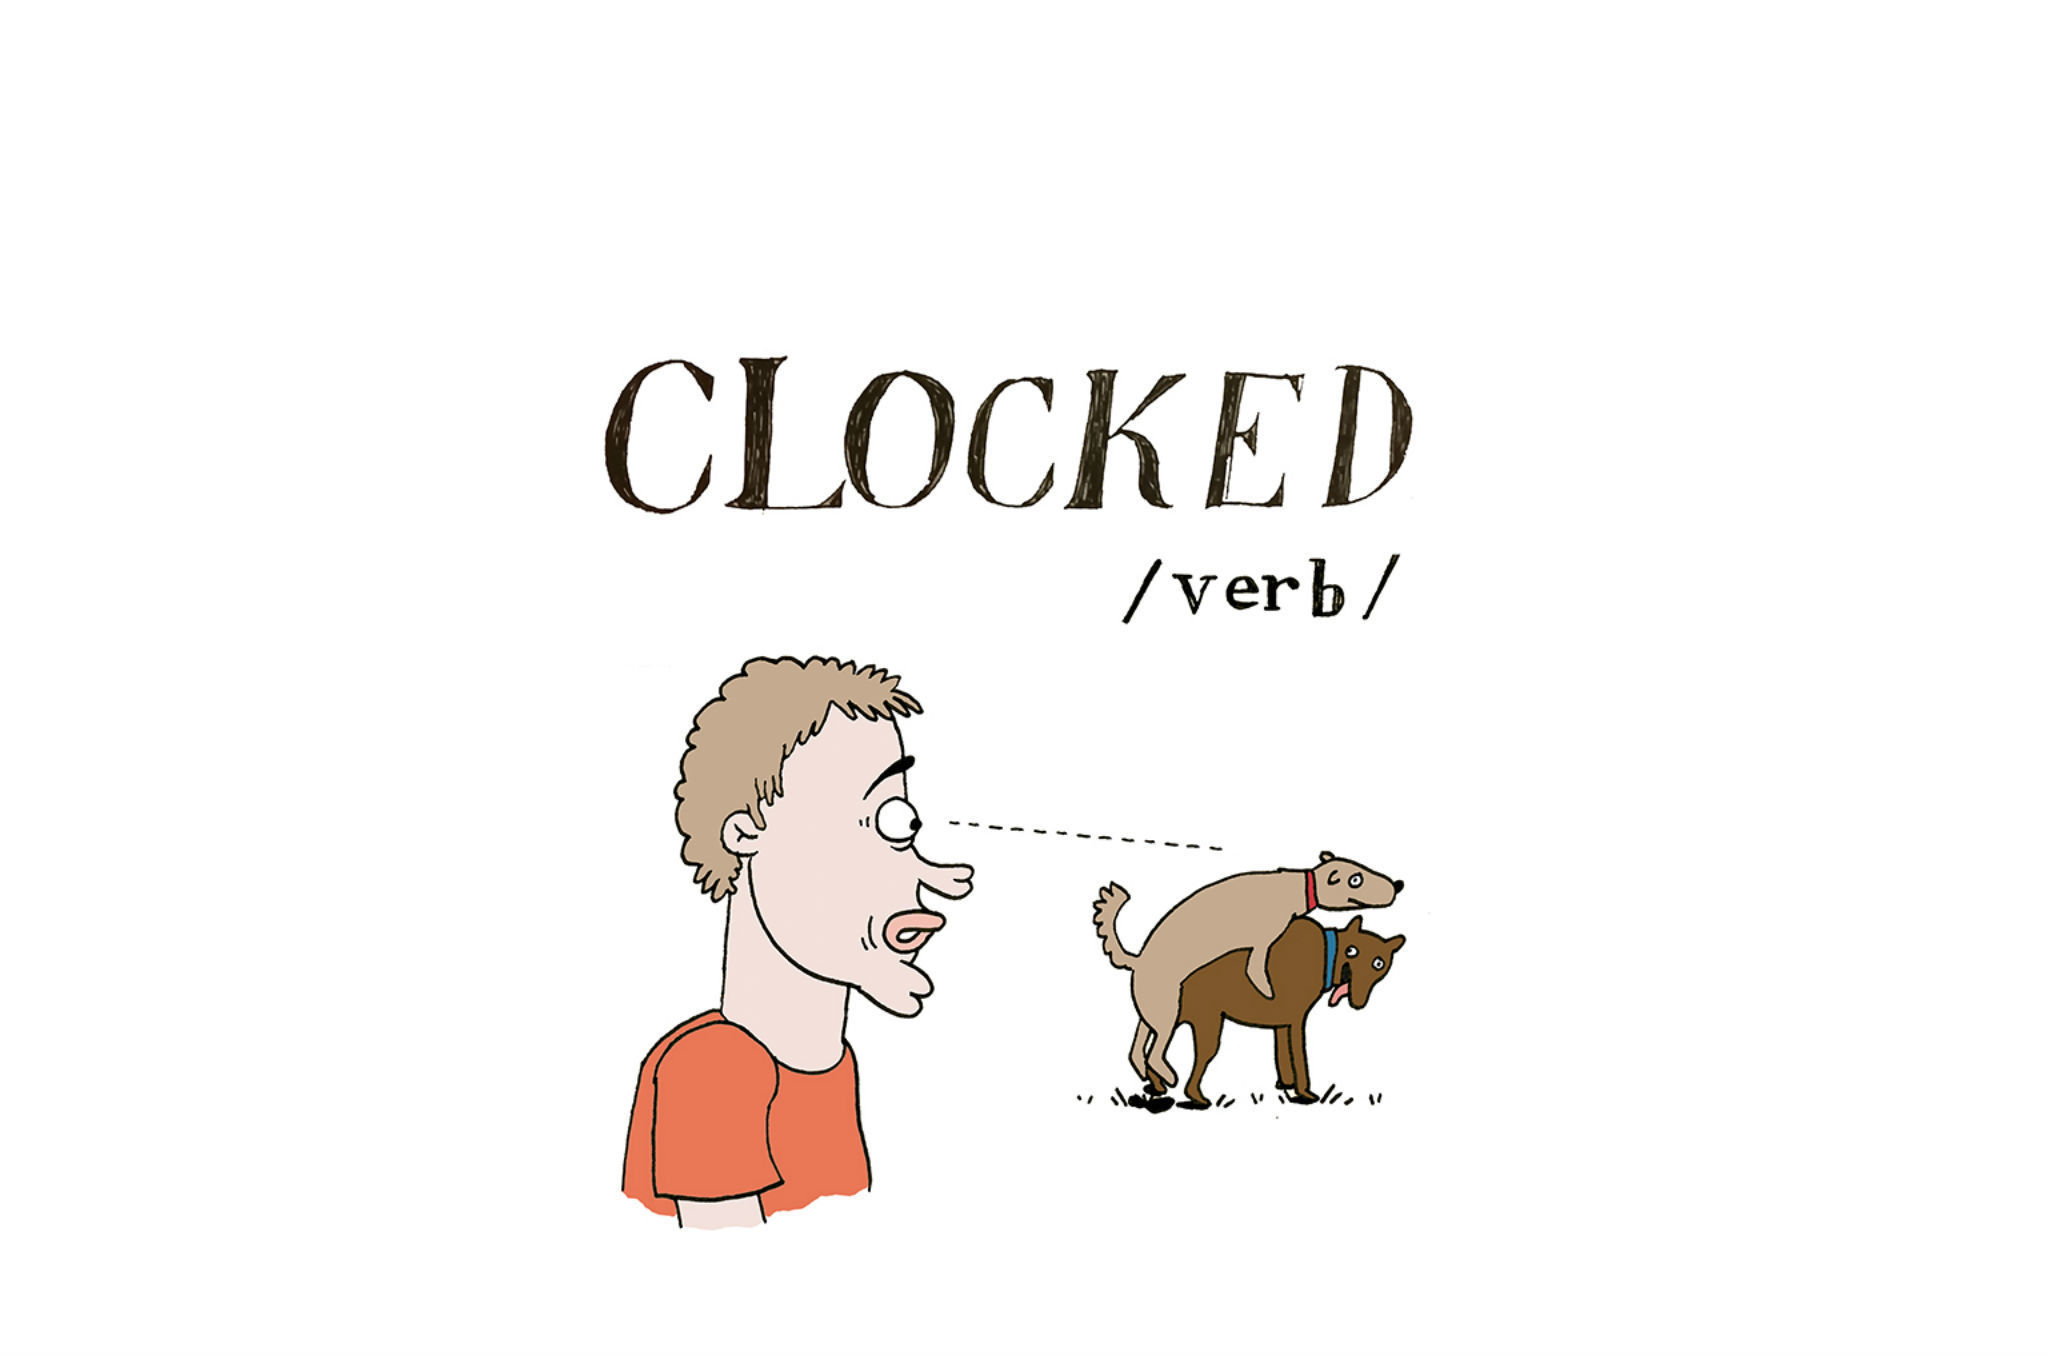 C is for Clocked